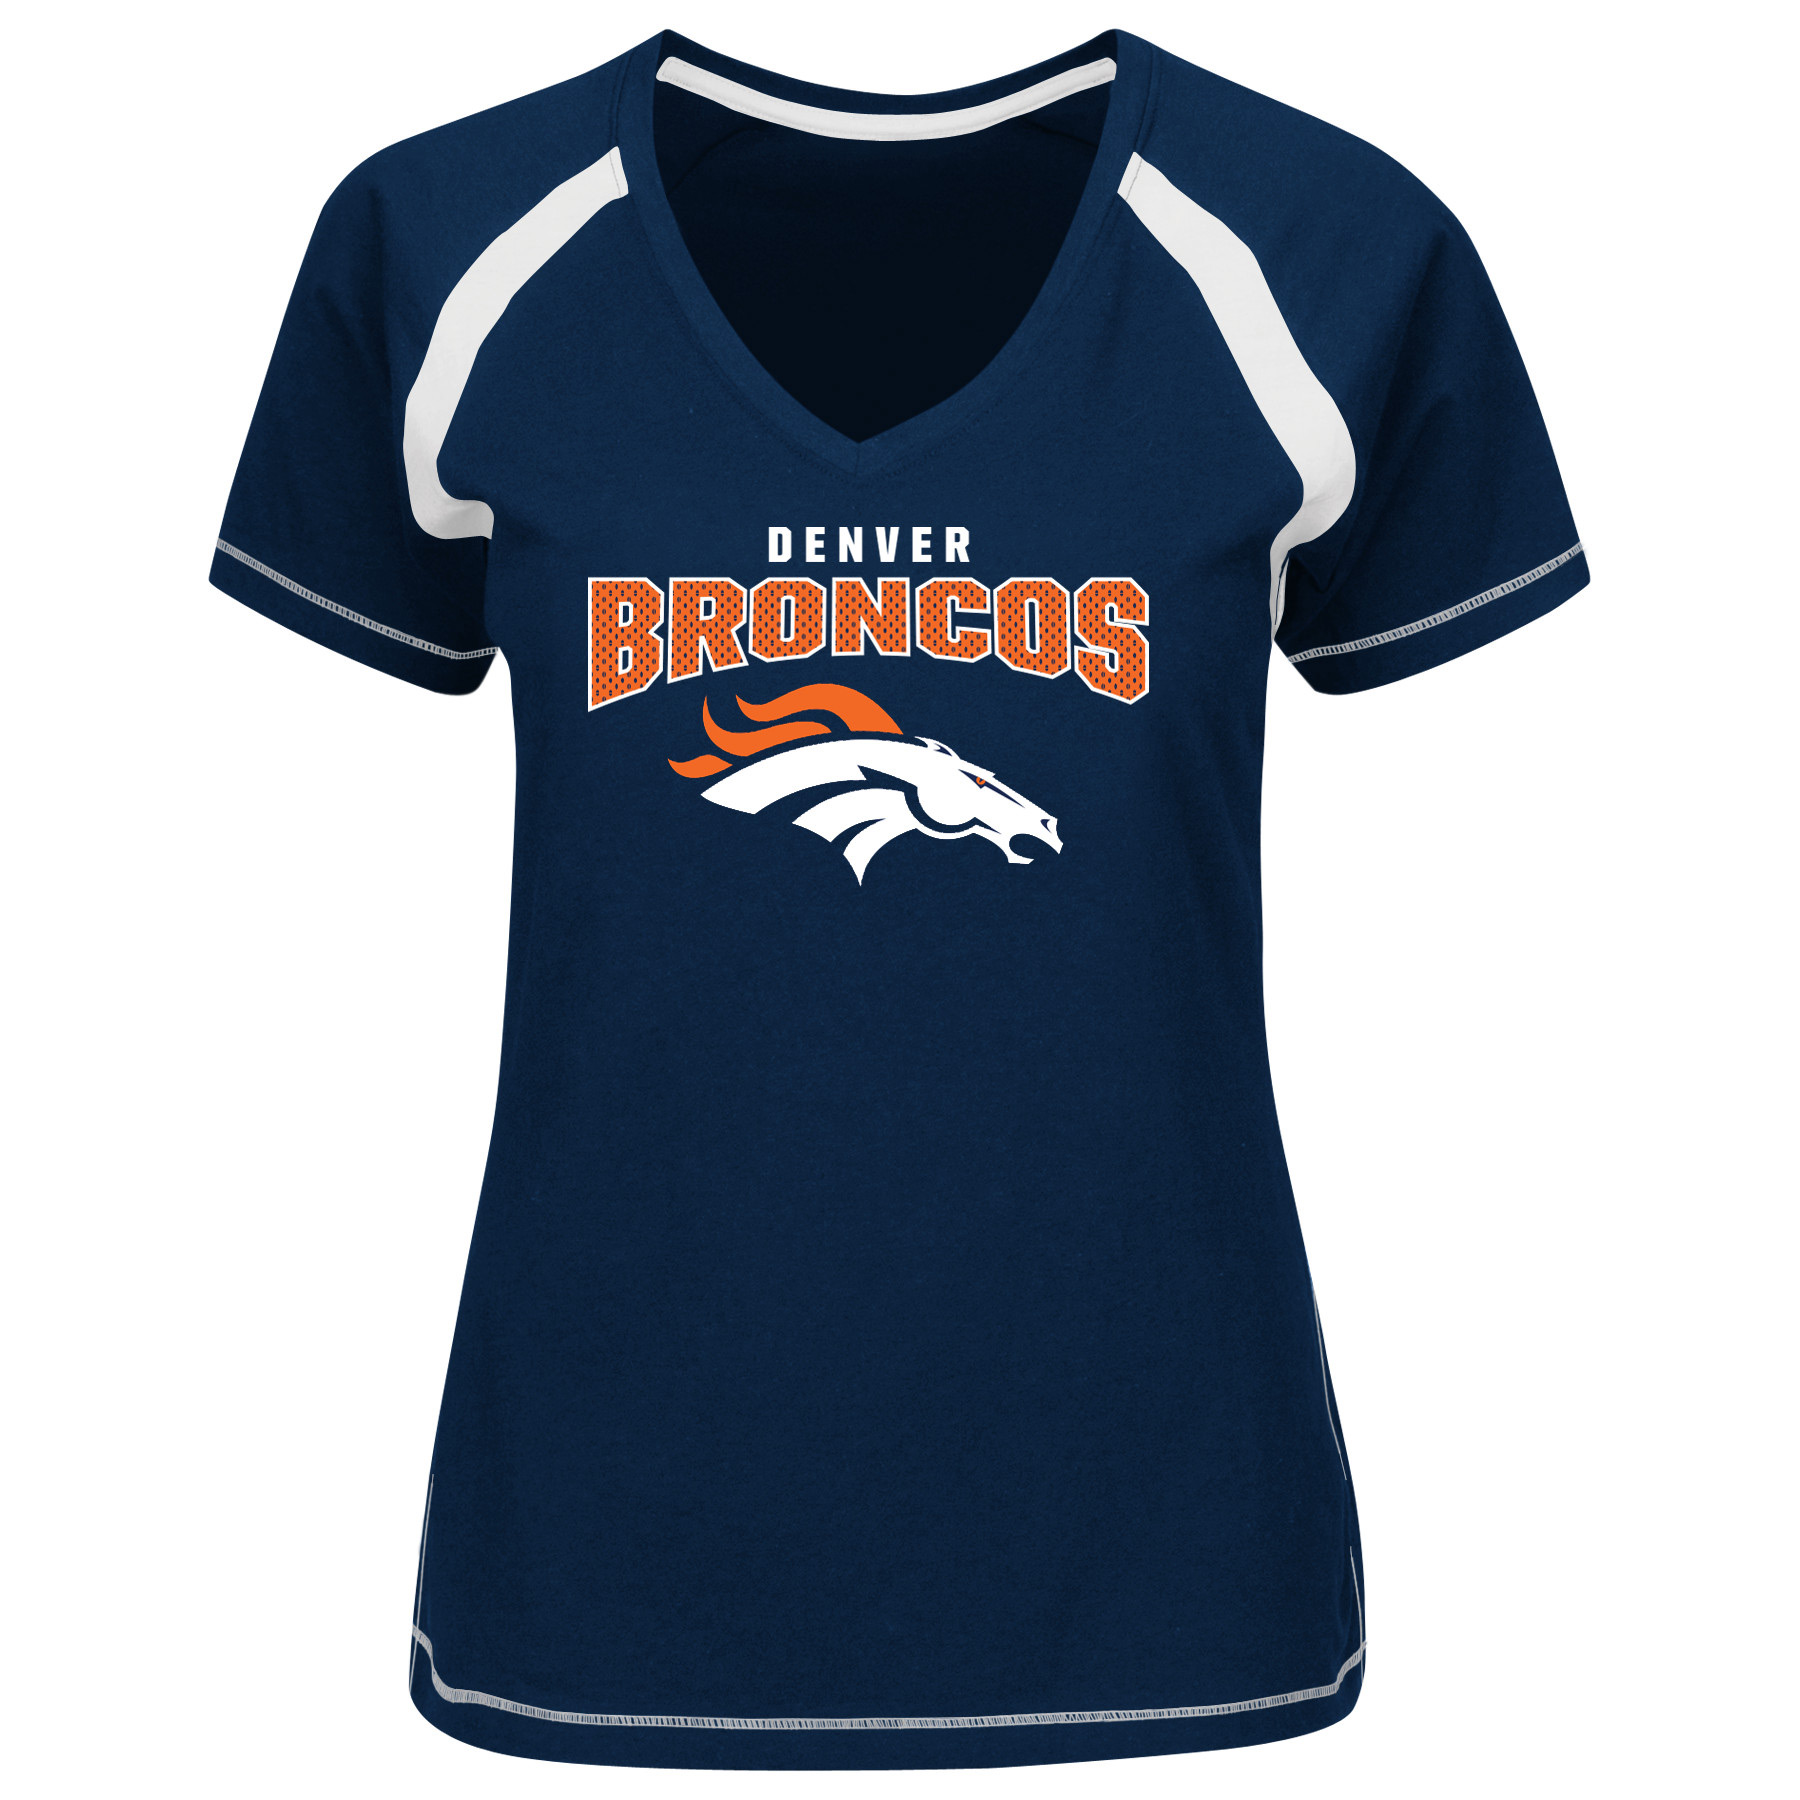 Denver Broncos Majestic Women's Game Day Tradition V-Neck T-Shirt - Navy - L